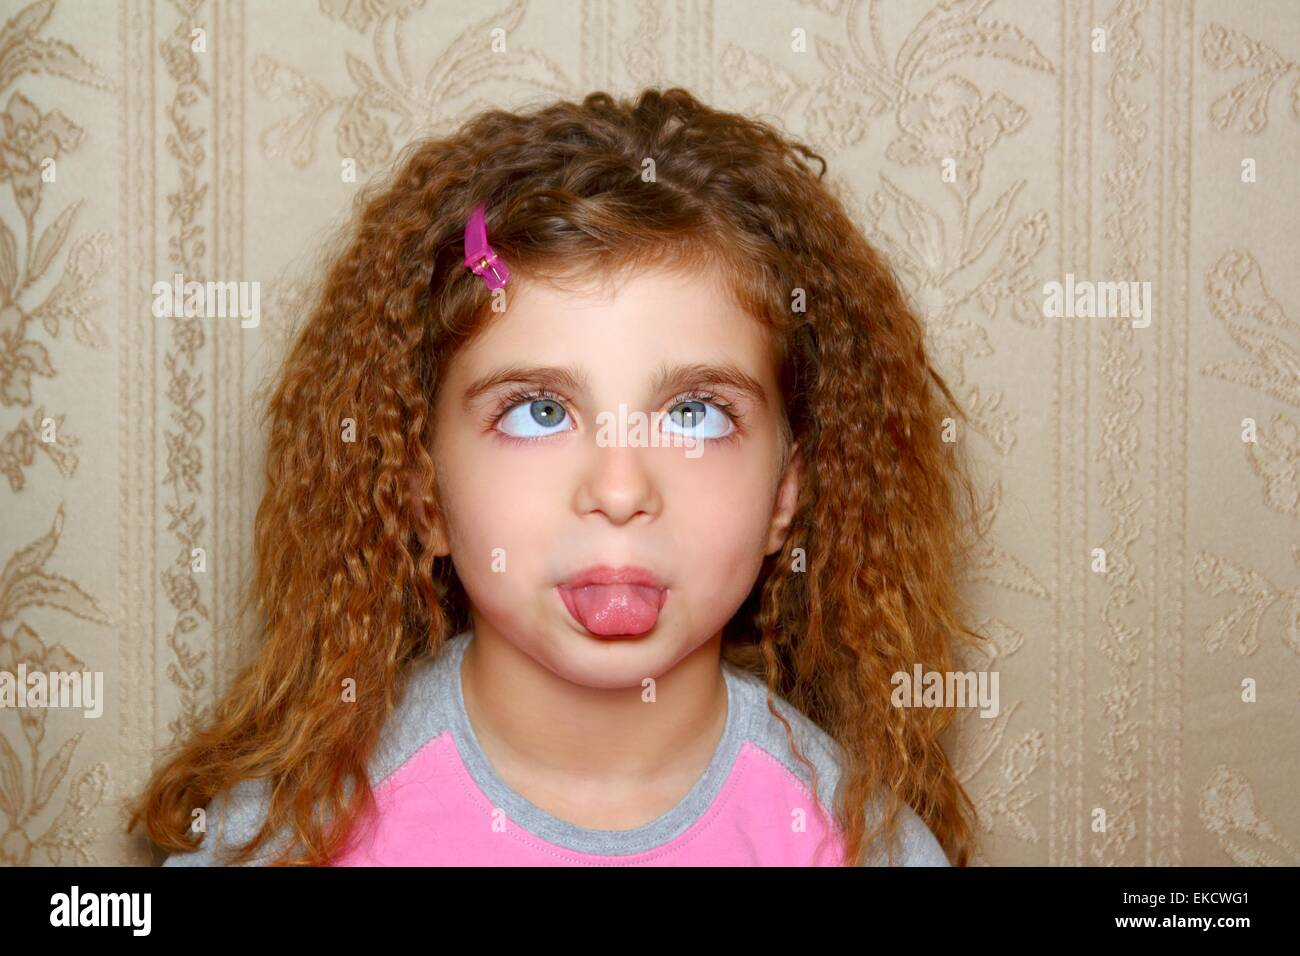 Funny girl face ugly expression cross eyed squinting stock - Ugly face wallpaper ...